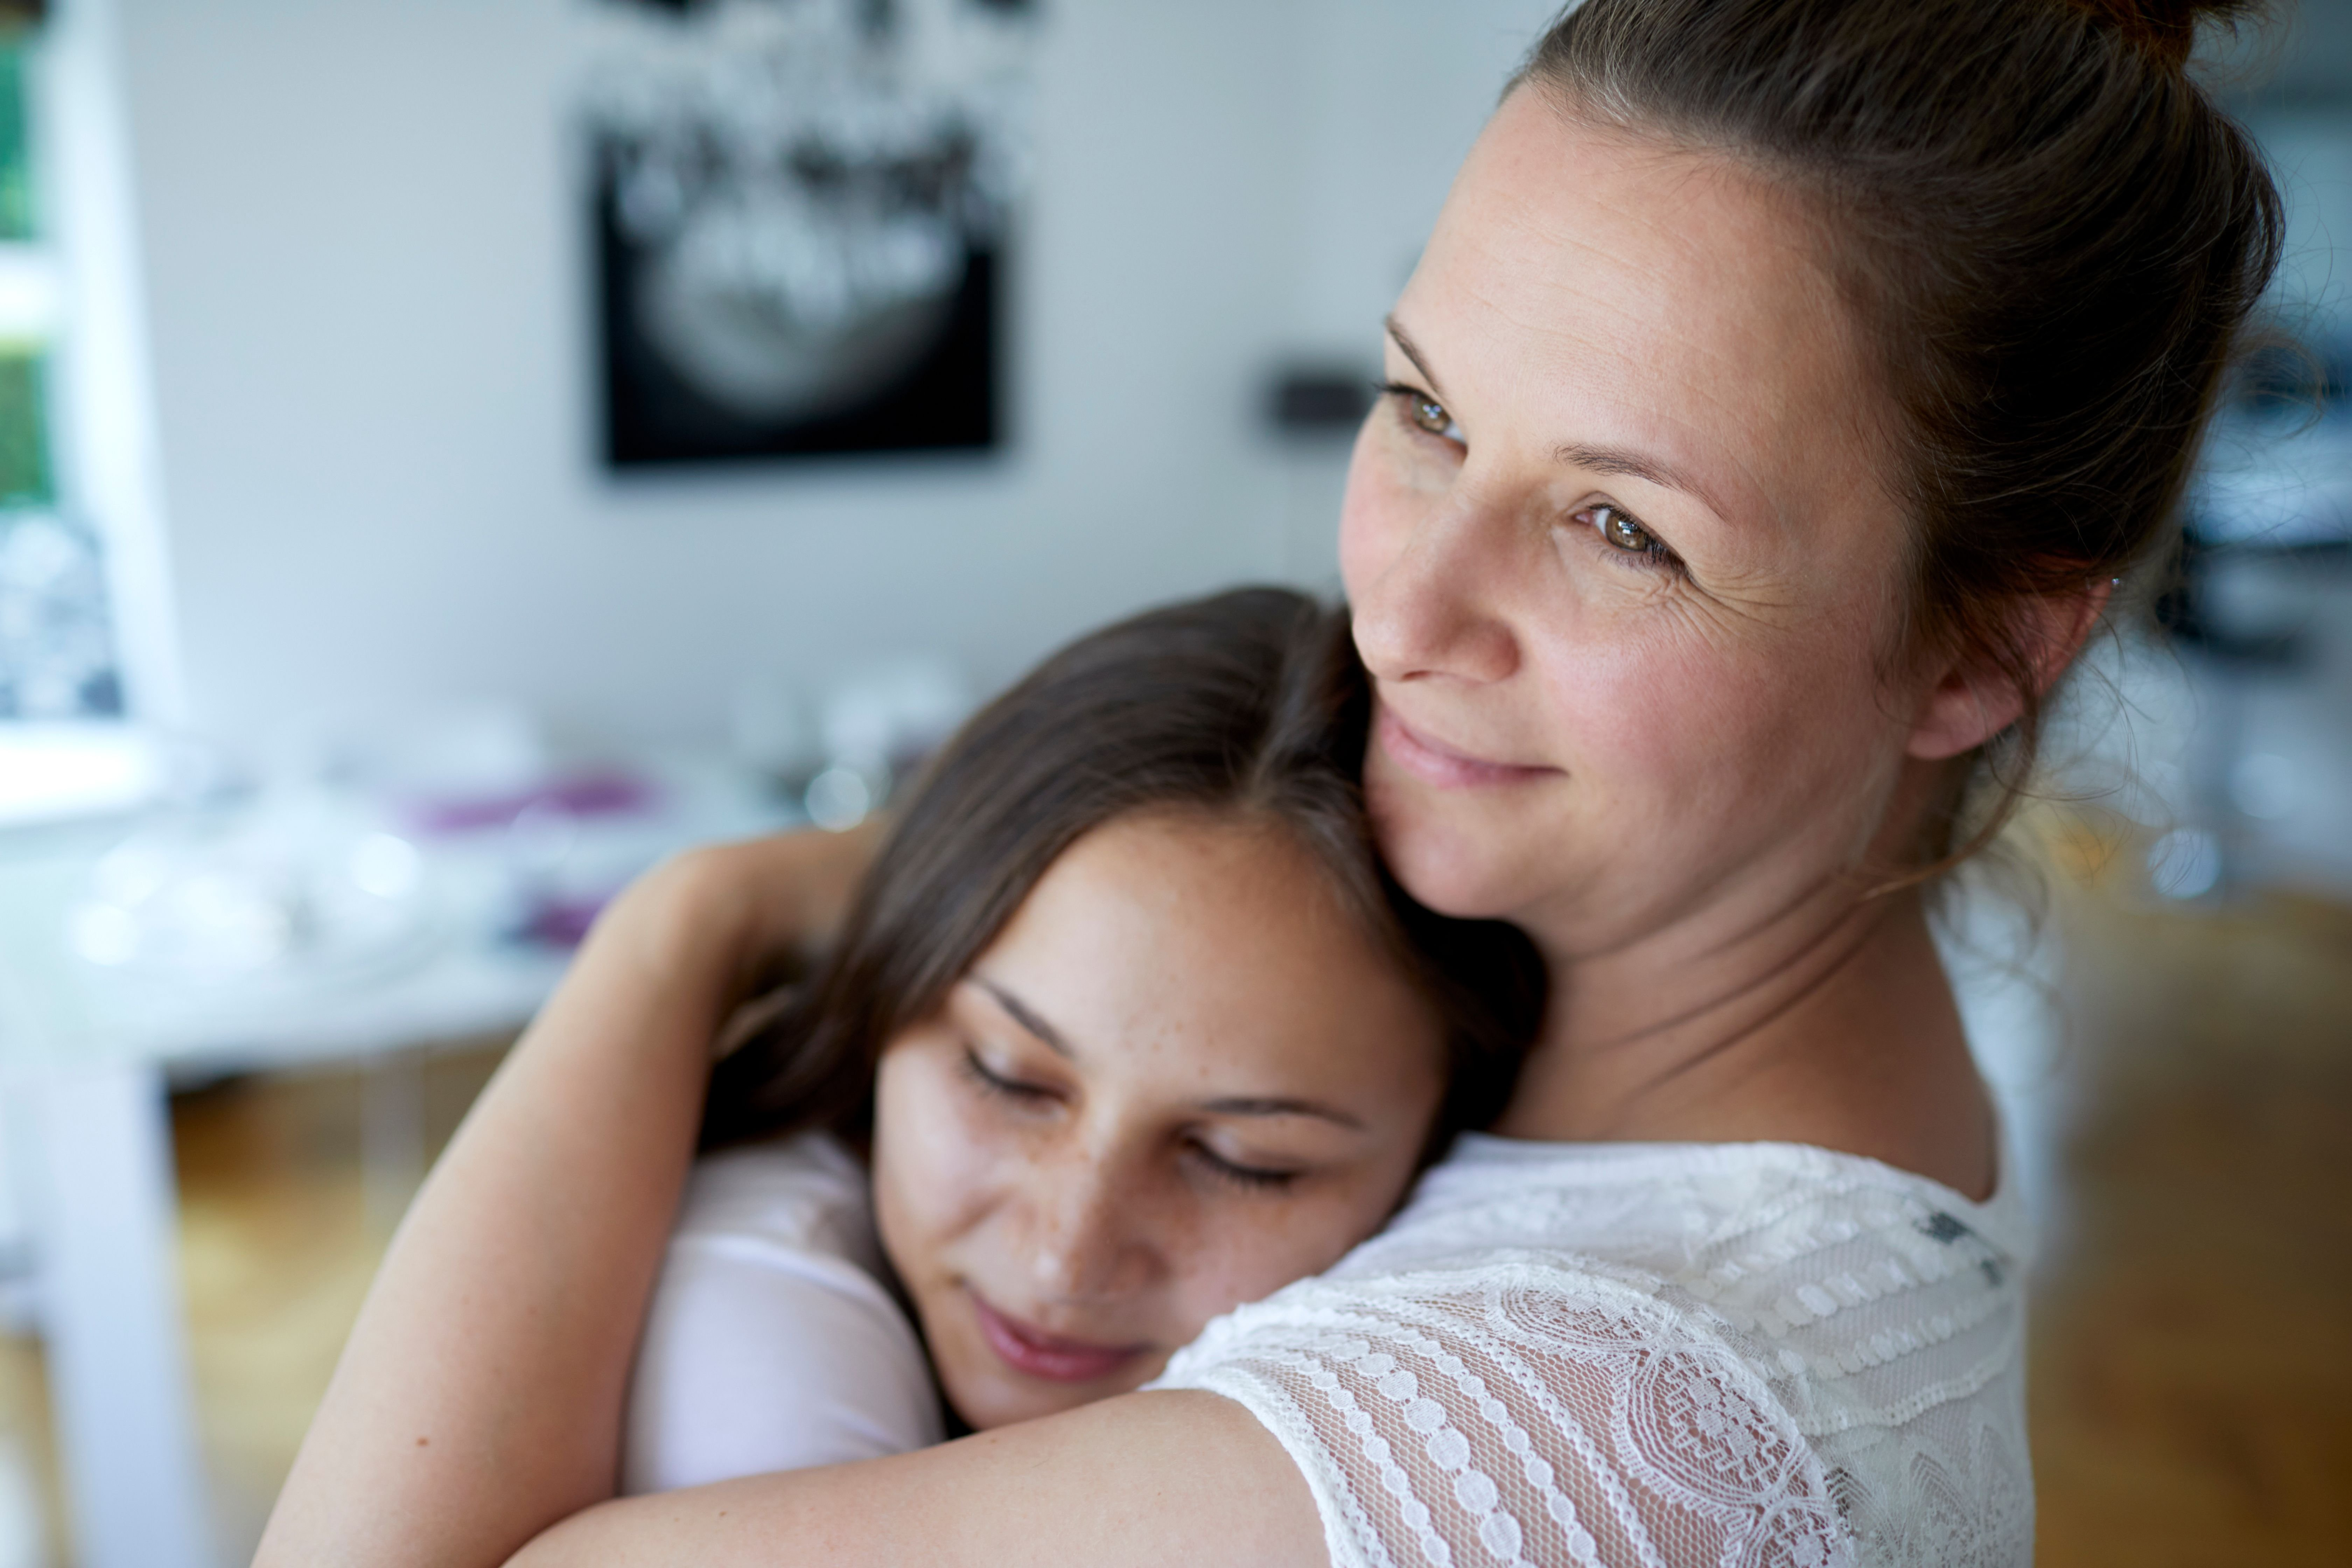 A mother and daughter hugging each other.   Source: Shutterstock